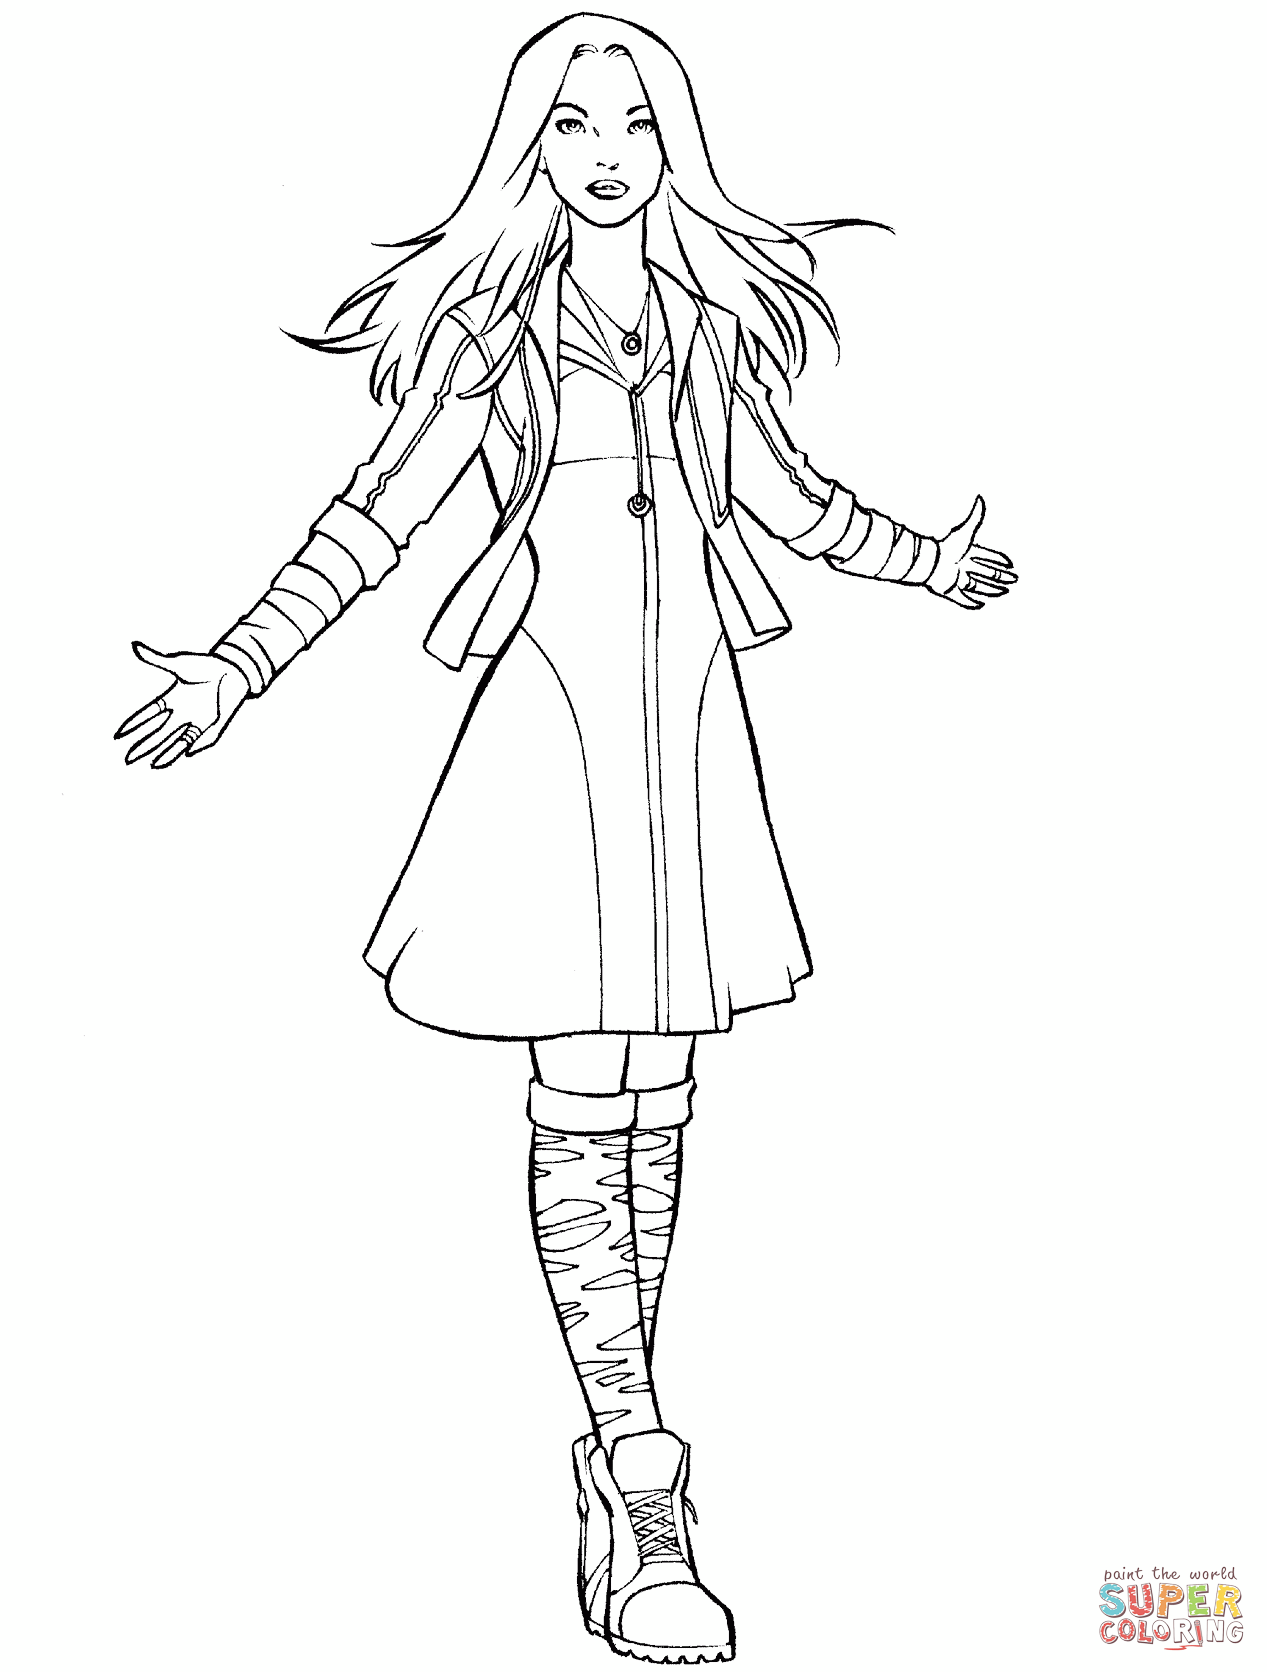 Avengers Scarlet Witch Coloring Page